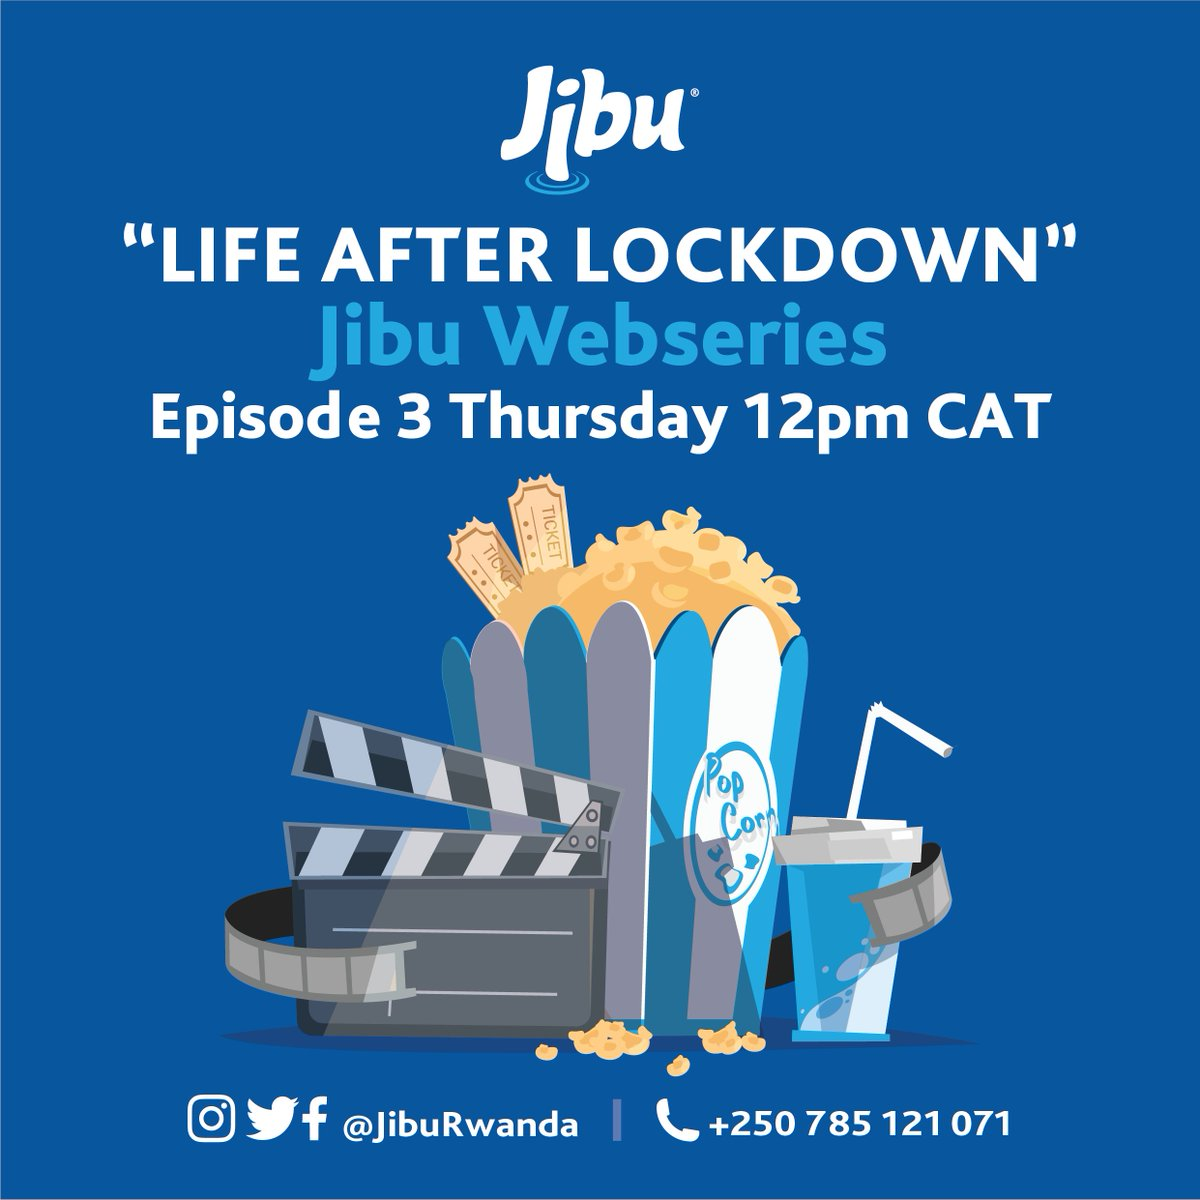 """JIBU have  launched a new online WebSeries!  We will be sharing fun and informative videos that will make us look forward to returning to """"LIFE AFTER LOCKDOWN"""". Tune in tomorrow for Episode#03 at 12pm CAT .  If you missed Episode#01& 02, check it out here: https://buff.ly/2Z0t3tEpic.twitter.com/vKSpRuXnhs"""